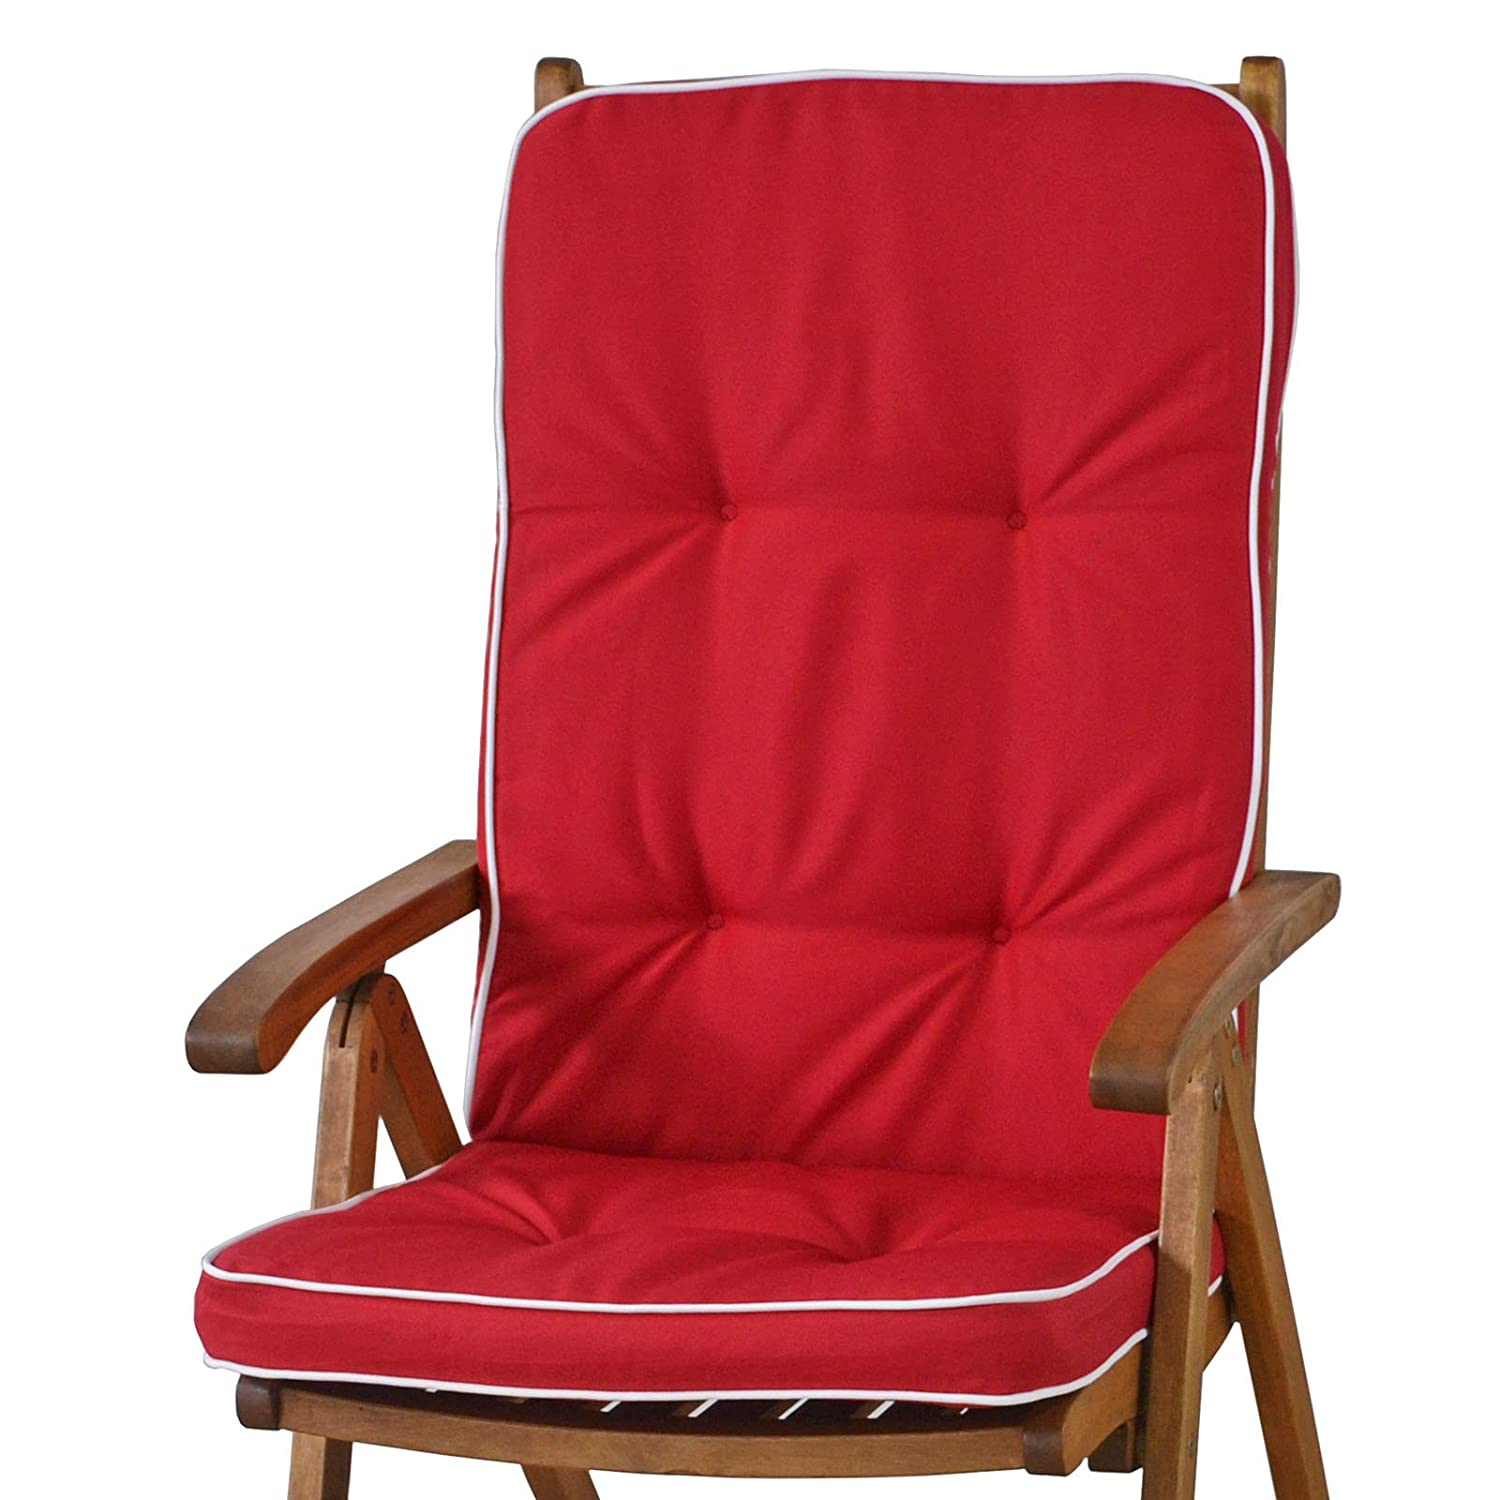 /White sun garden 4x Cushion for High-Backed Chair Tomiro 50077/ /33/Red No Armchair/